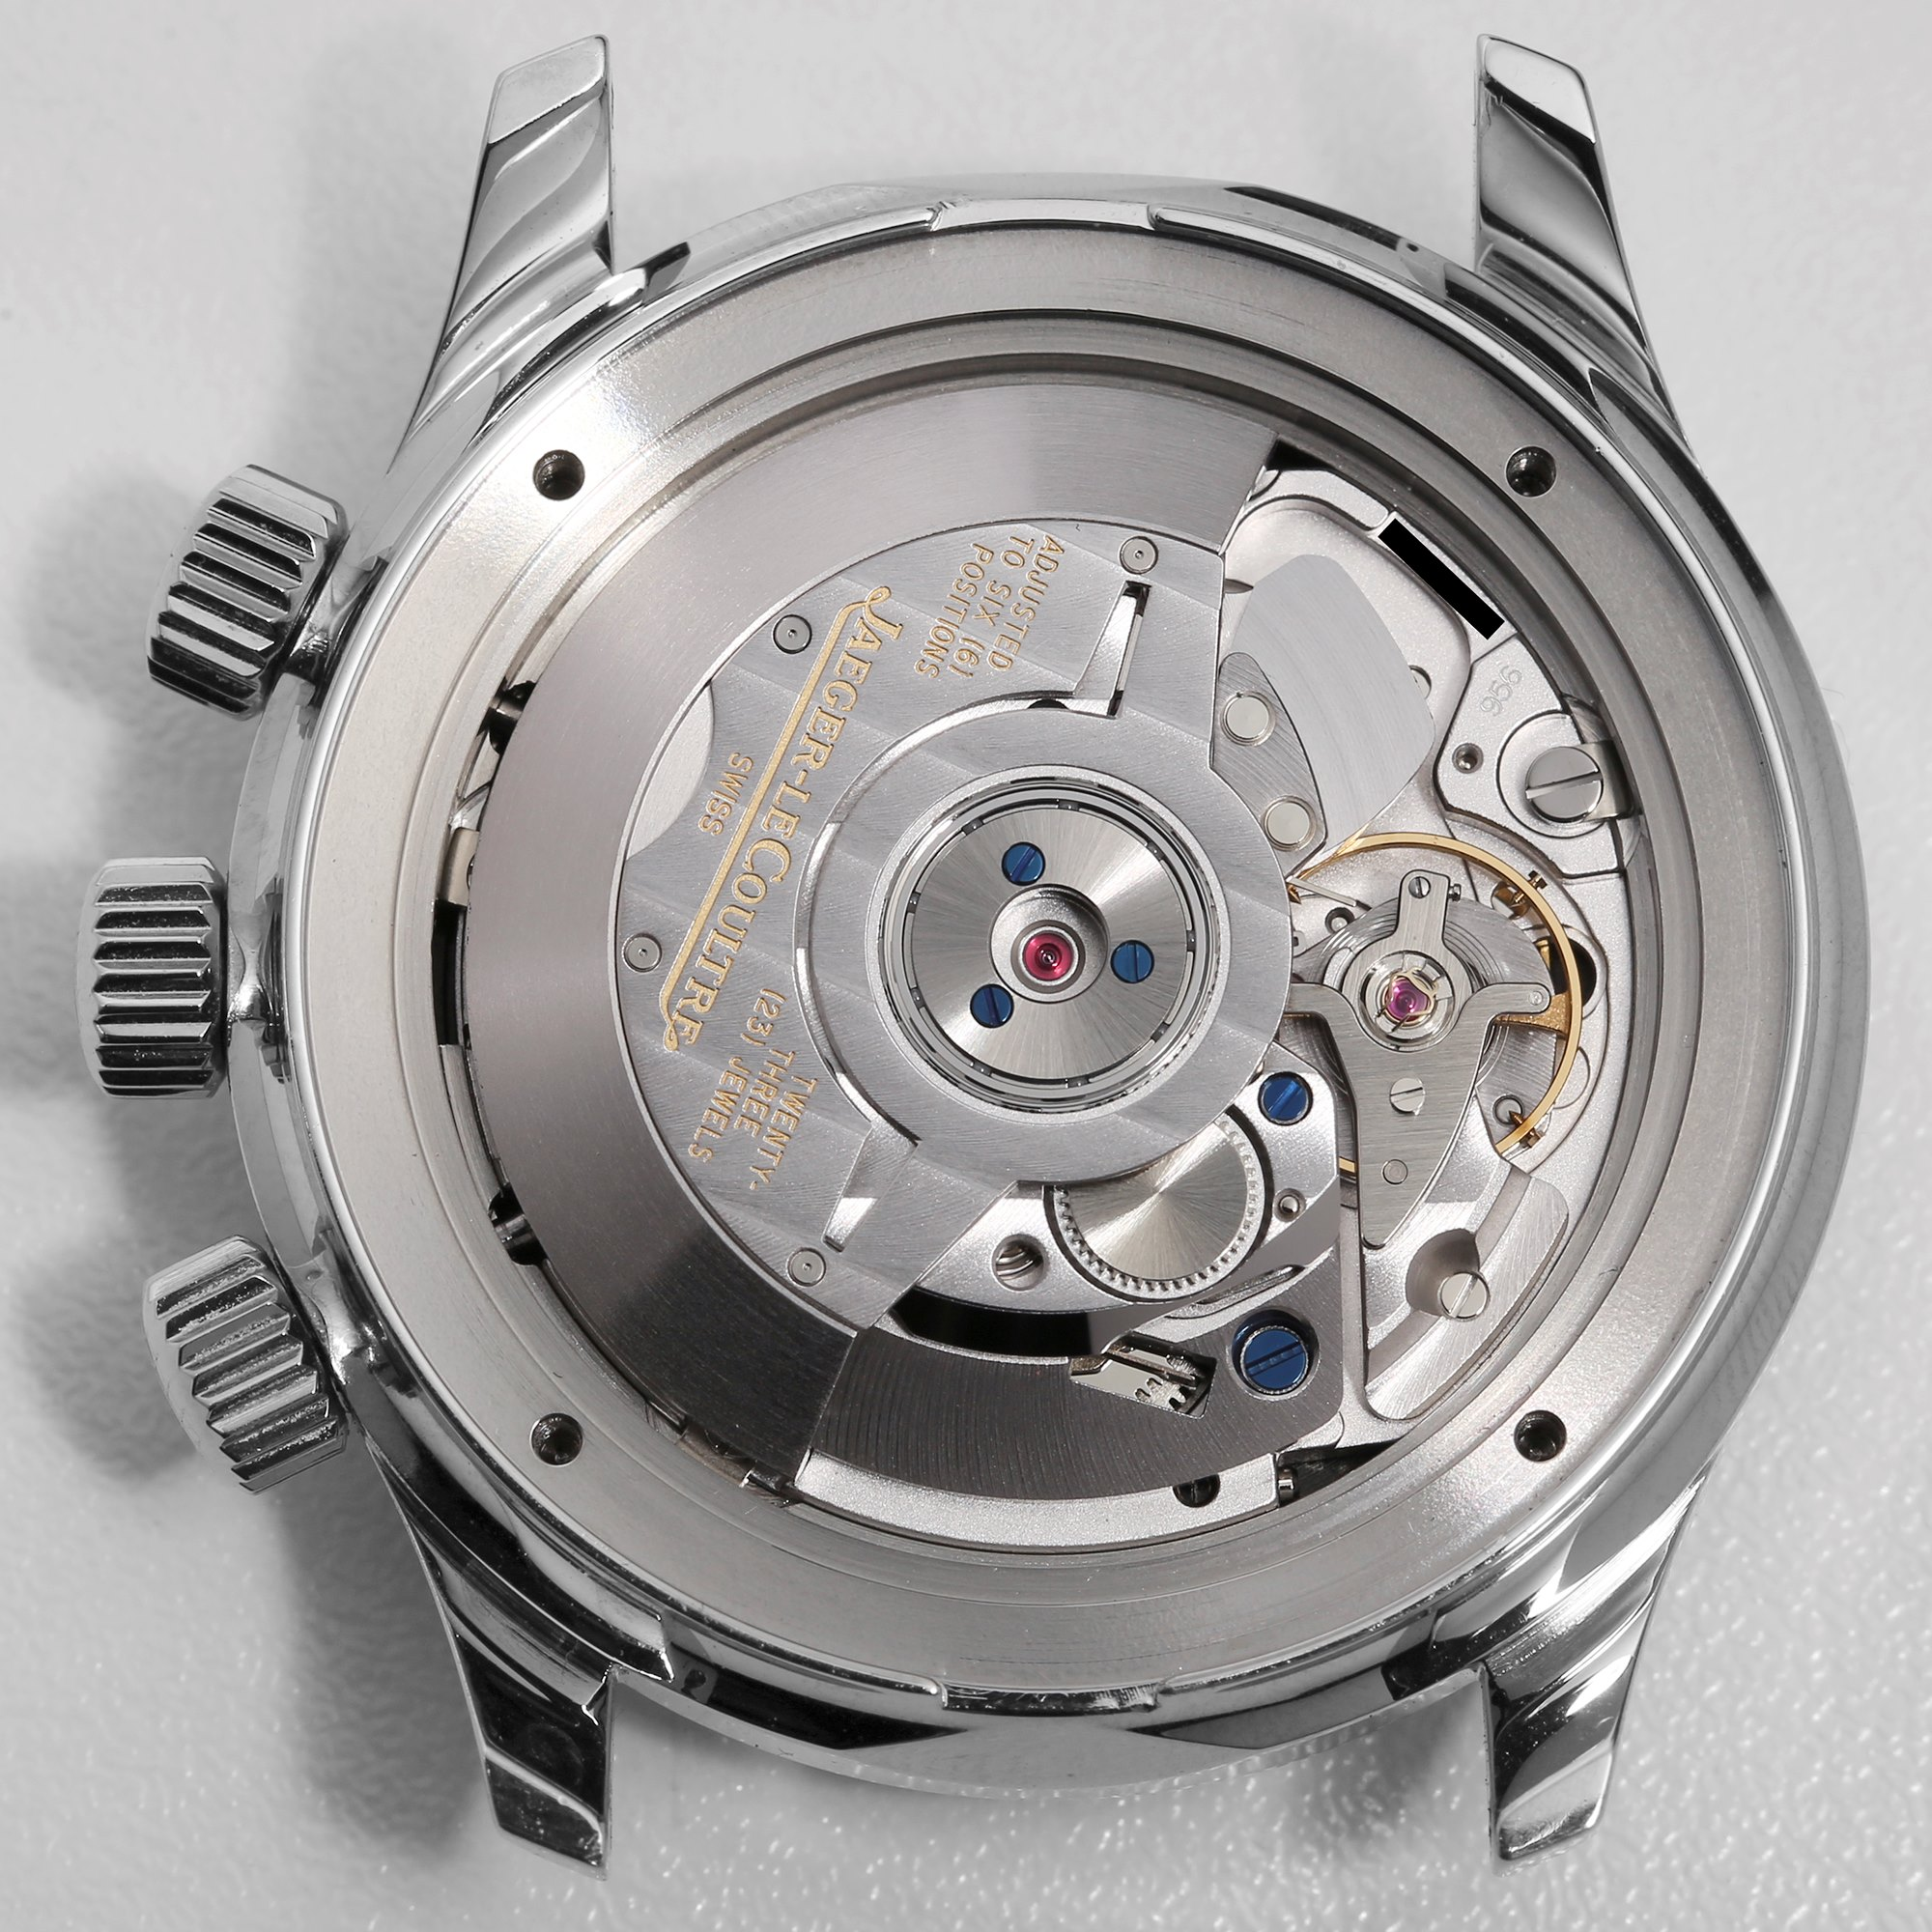 Jaeger-LeCoultre Memovox Polaris Limited Edition of 768 Pieces Stainless Steel - Q2008470 or 190.8.96 Stainless Steel Q2008470 or 190.8.96